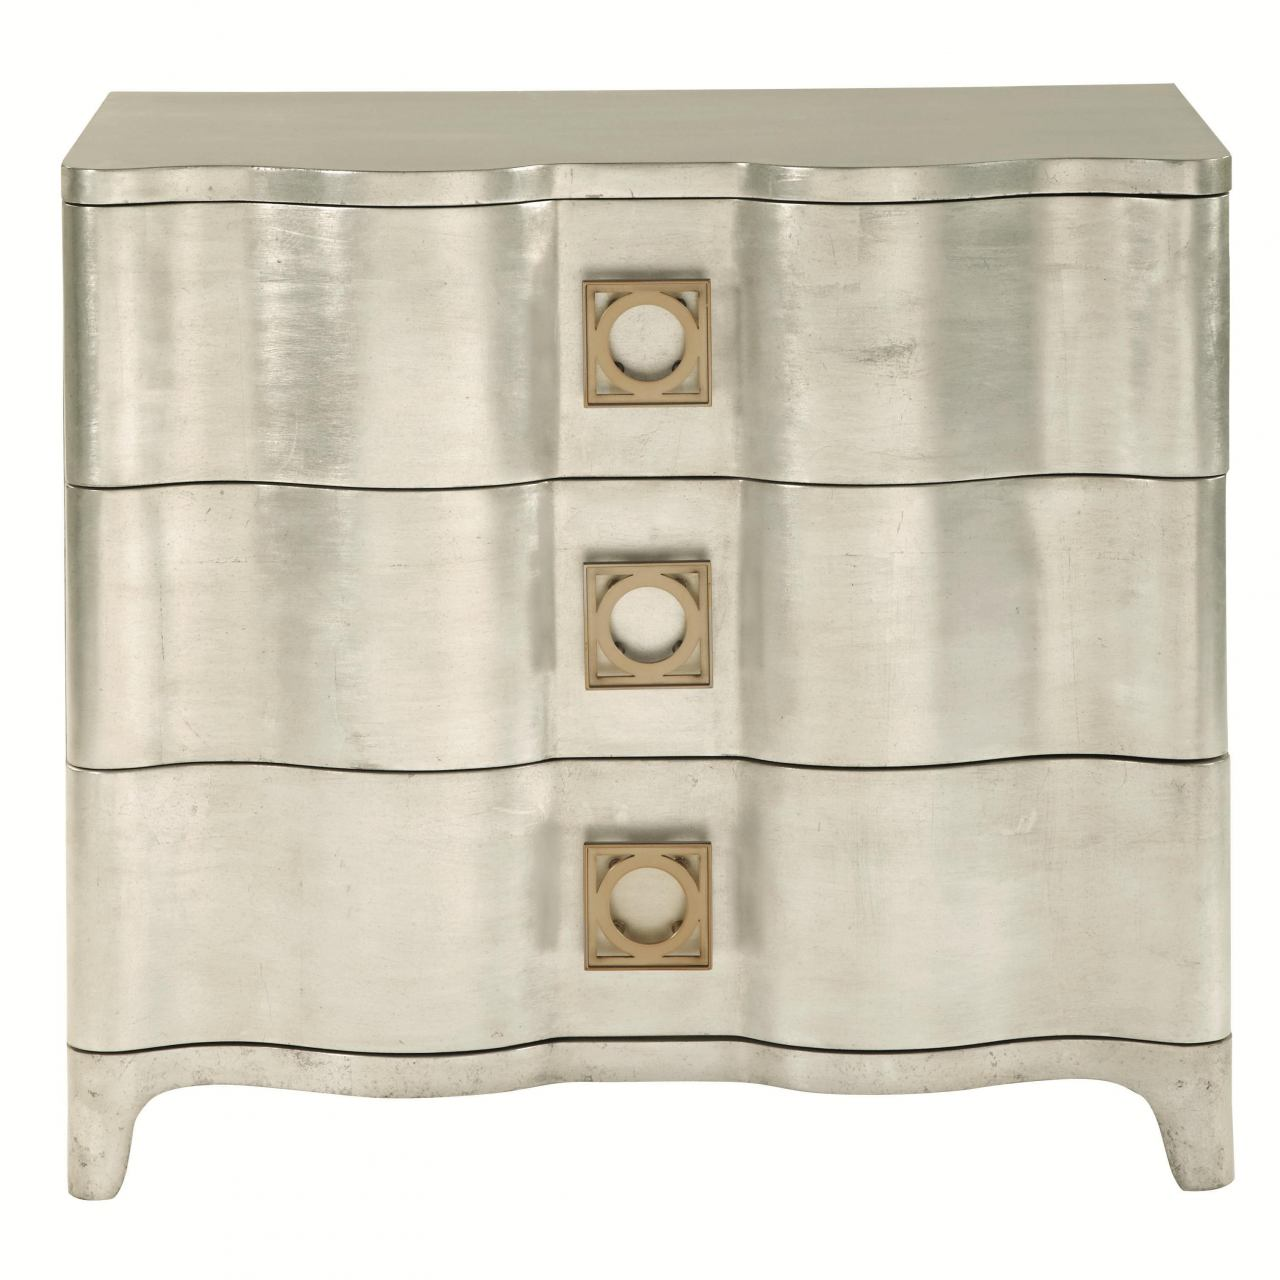 Bernhardt Salon Three Drawer Nightstand with Square Wooden Drawer Pulls in Antique Silver Leaf 341-228